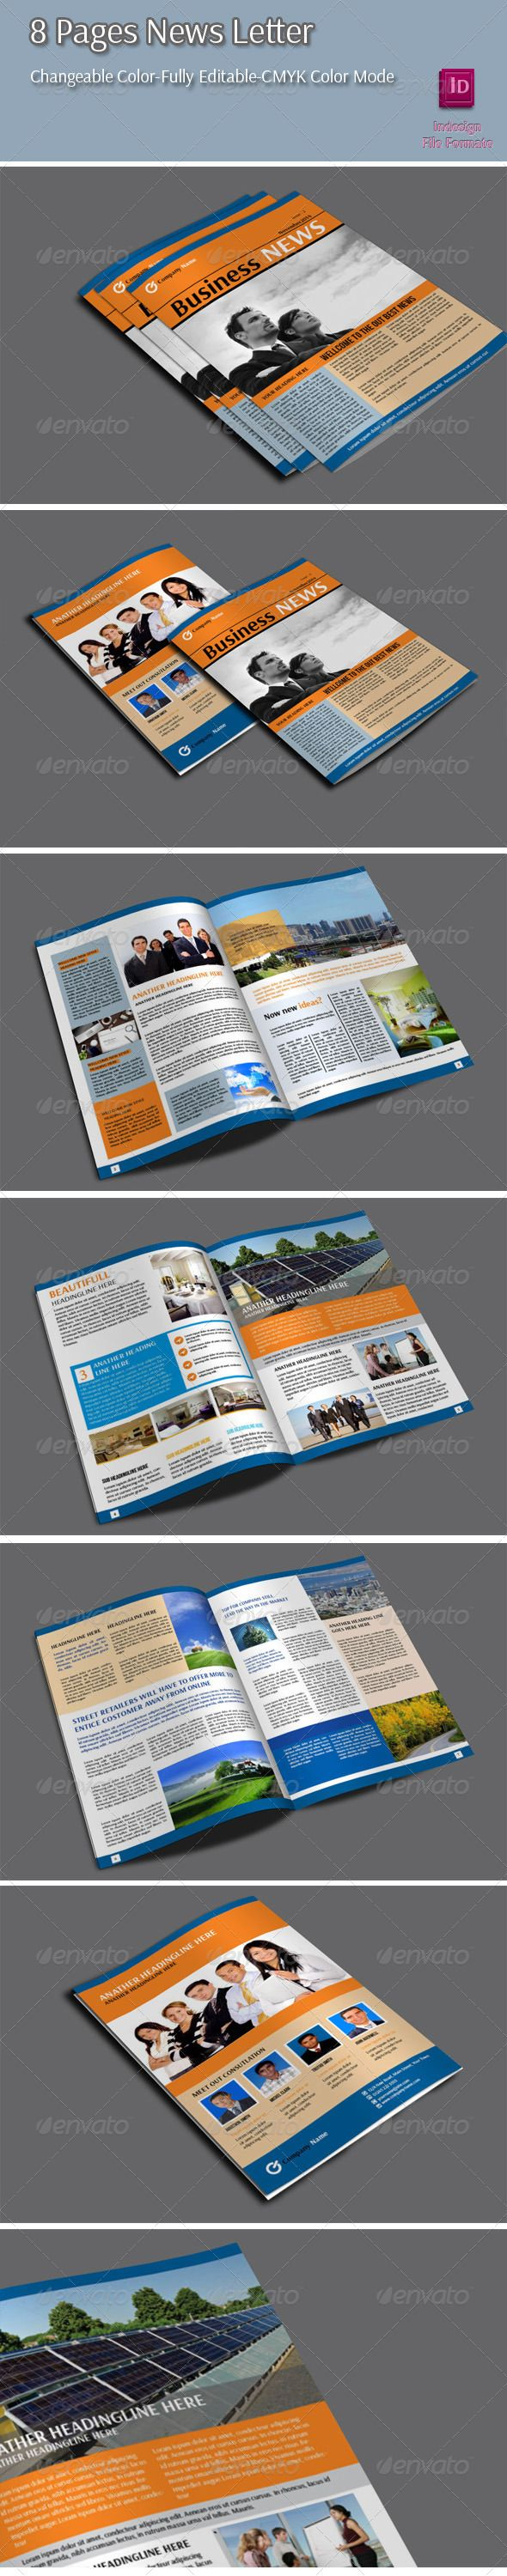 8 Pages Newletter - Newsletters Print Templates Download here : https://graphicriver.net/item/8-pages-newletter/6450642?s_rank=290&ref=Al-fatih